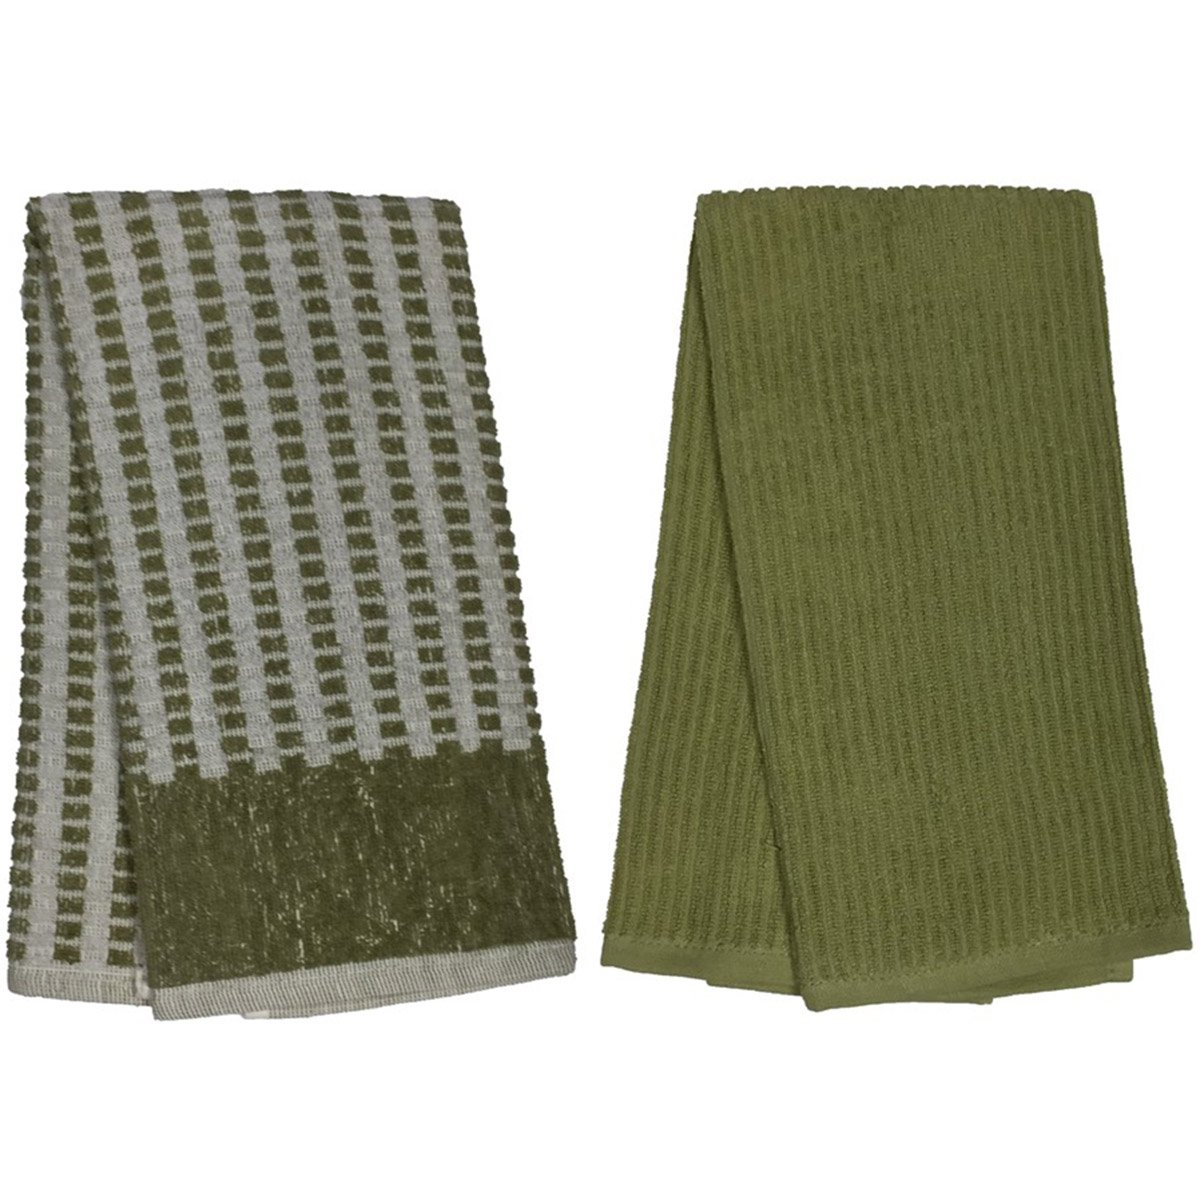 Set of 2, 100% Ringspun Cotton Premium Everyday Marseille Terry Kitchen Towels Size : 16'' x 27''. (Sage)